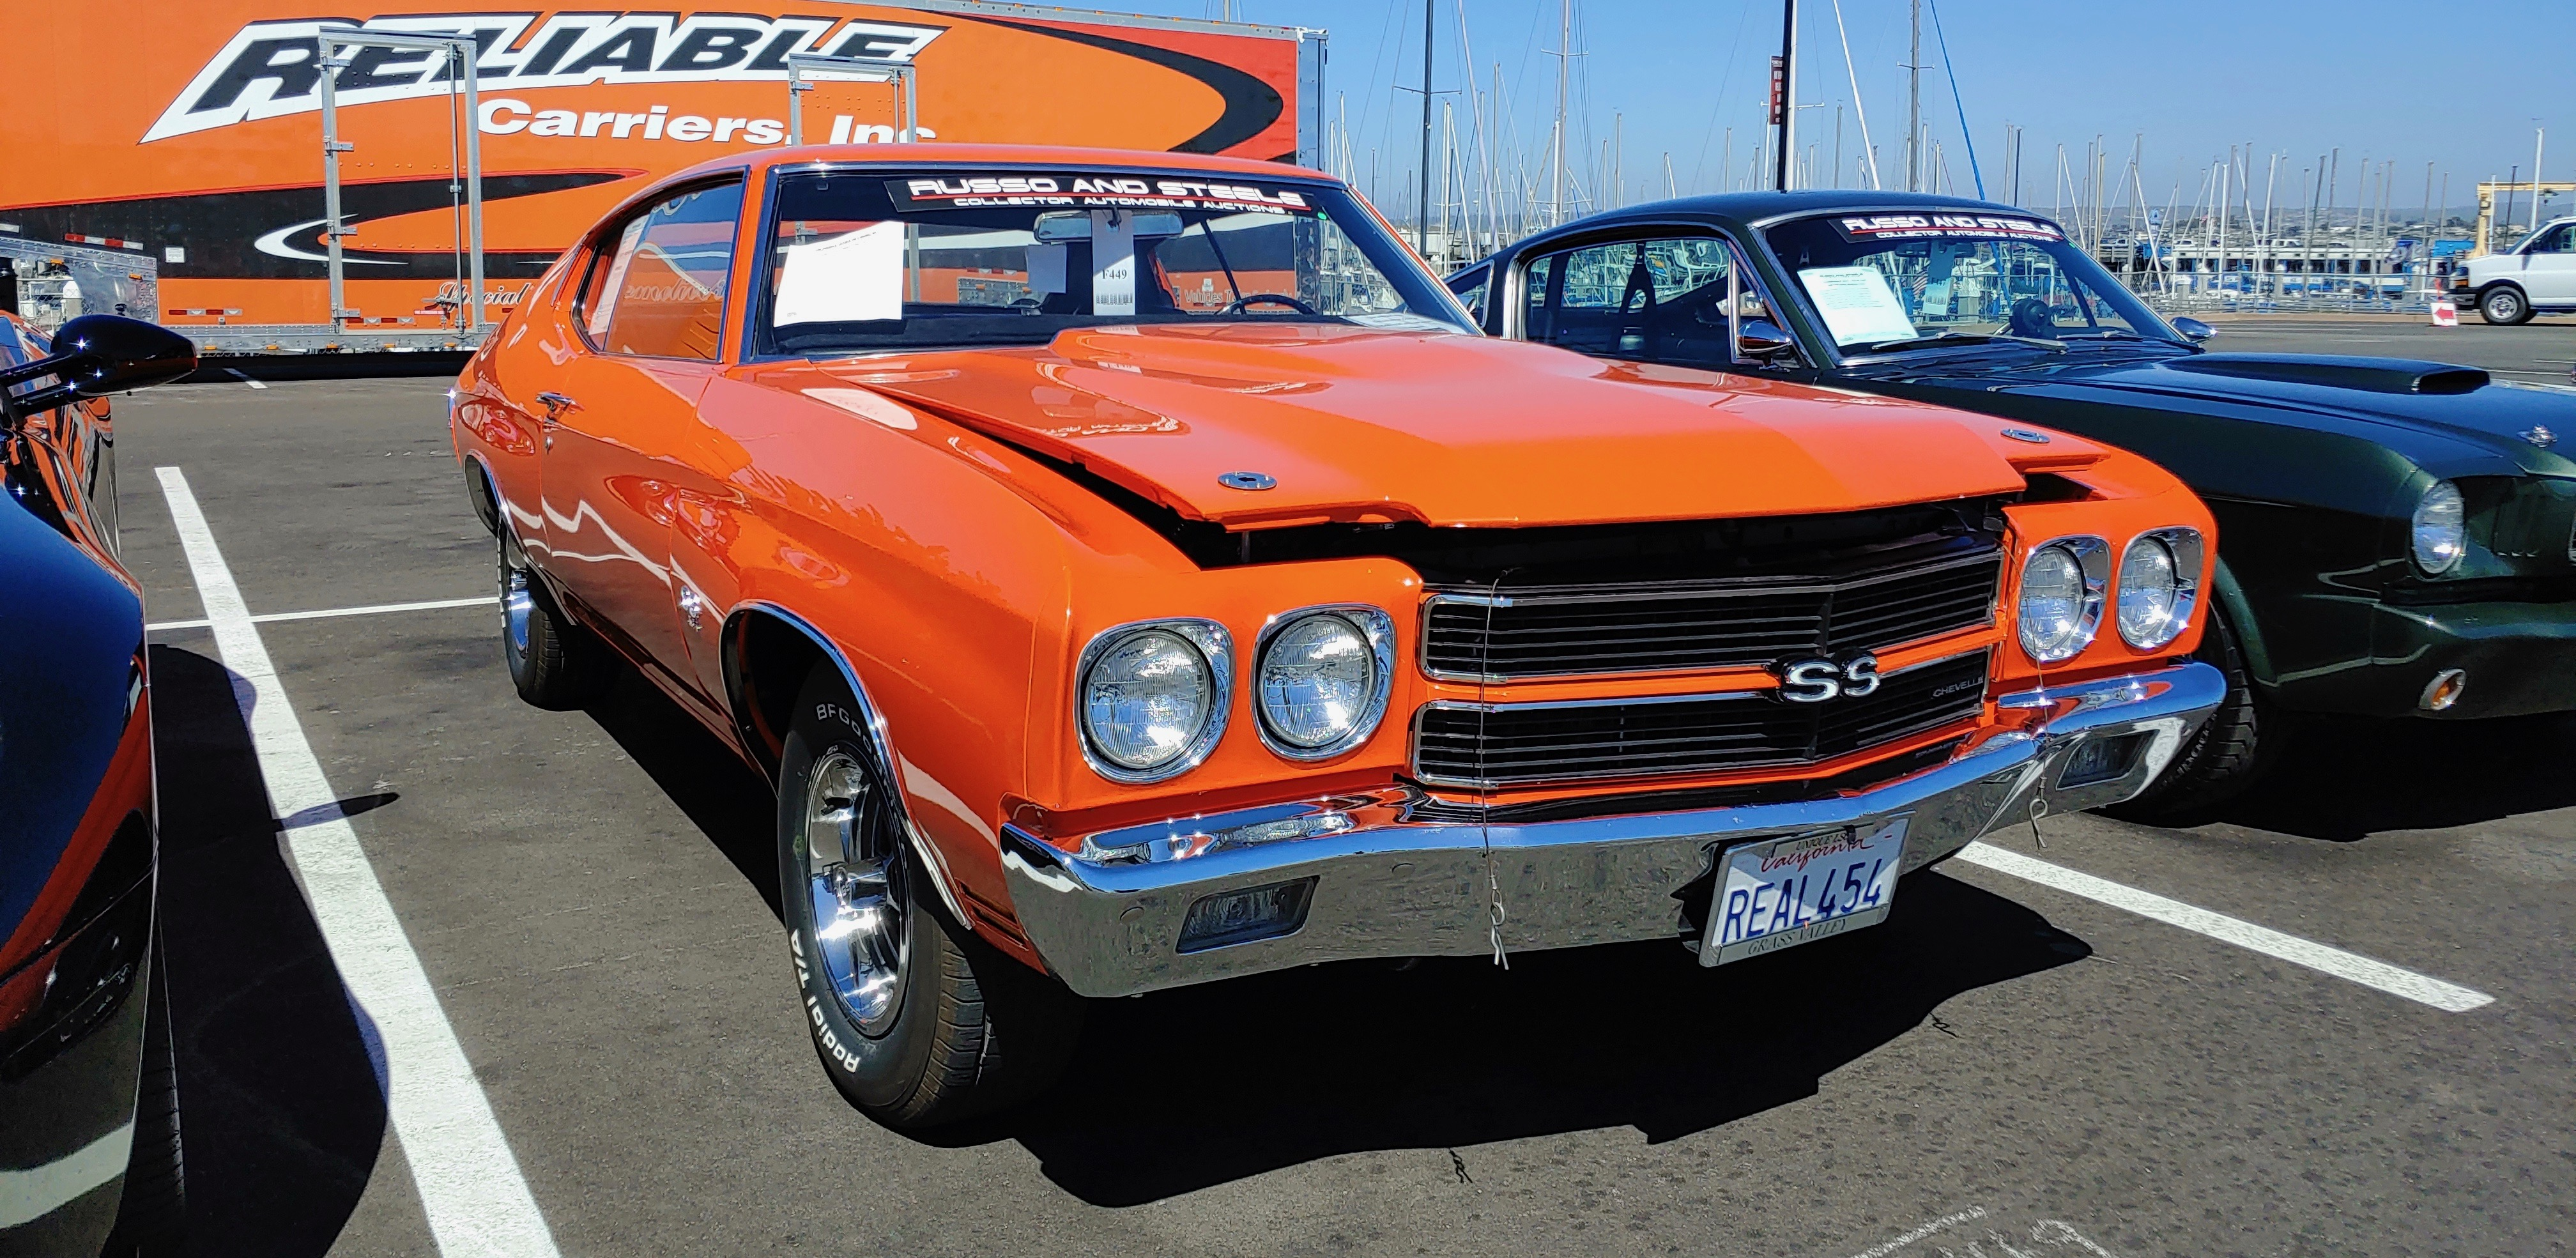 Russo and Steele, Andy offers up his favorites from Russo and Steele at Monterey, ClassicCars.com Journal